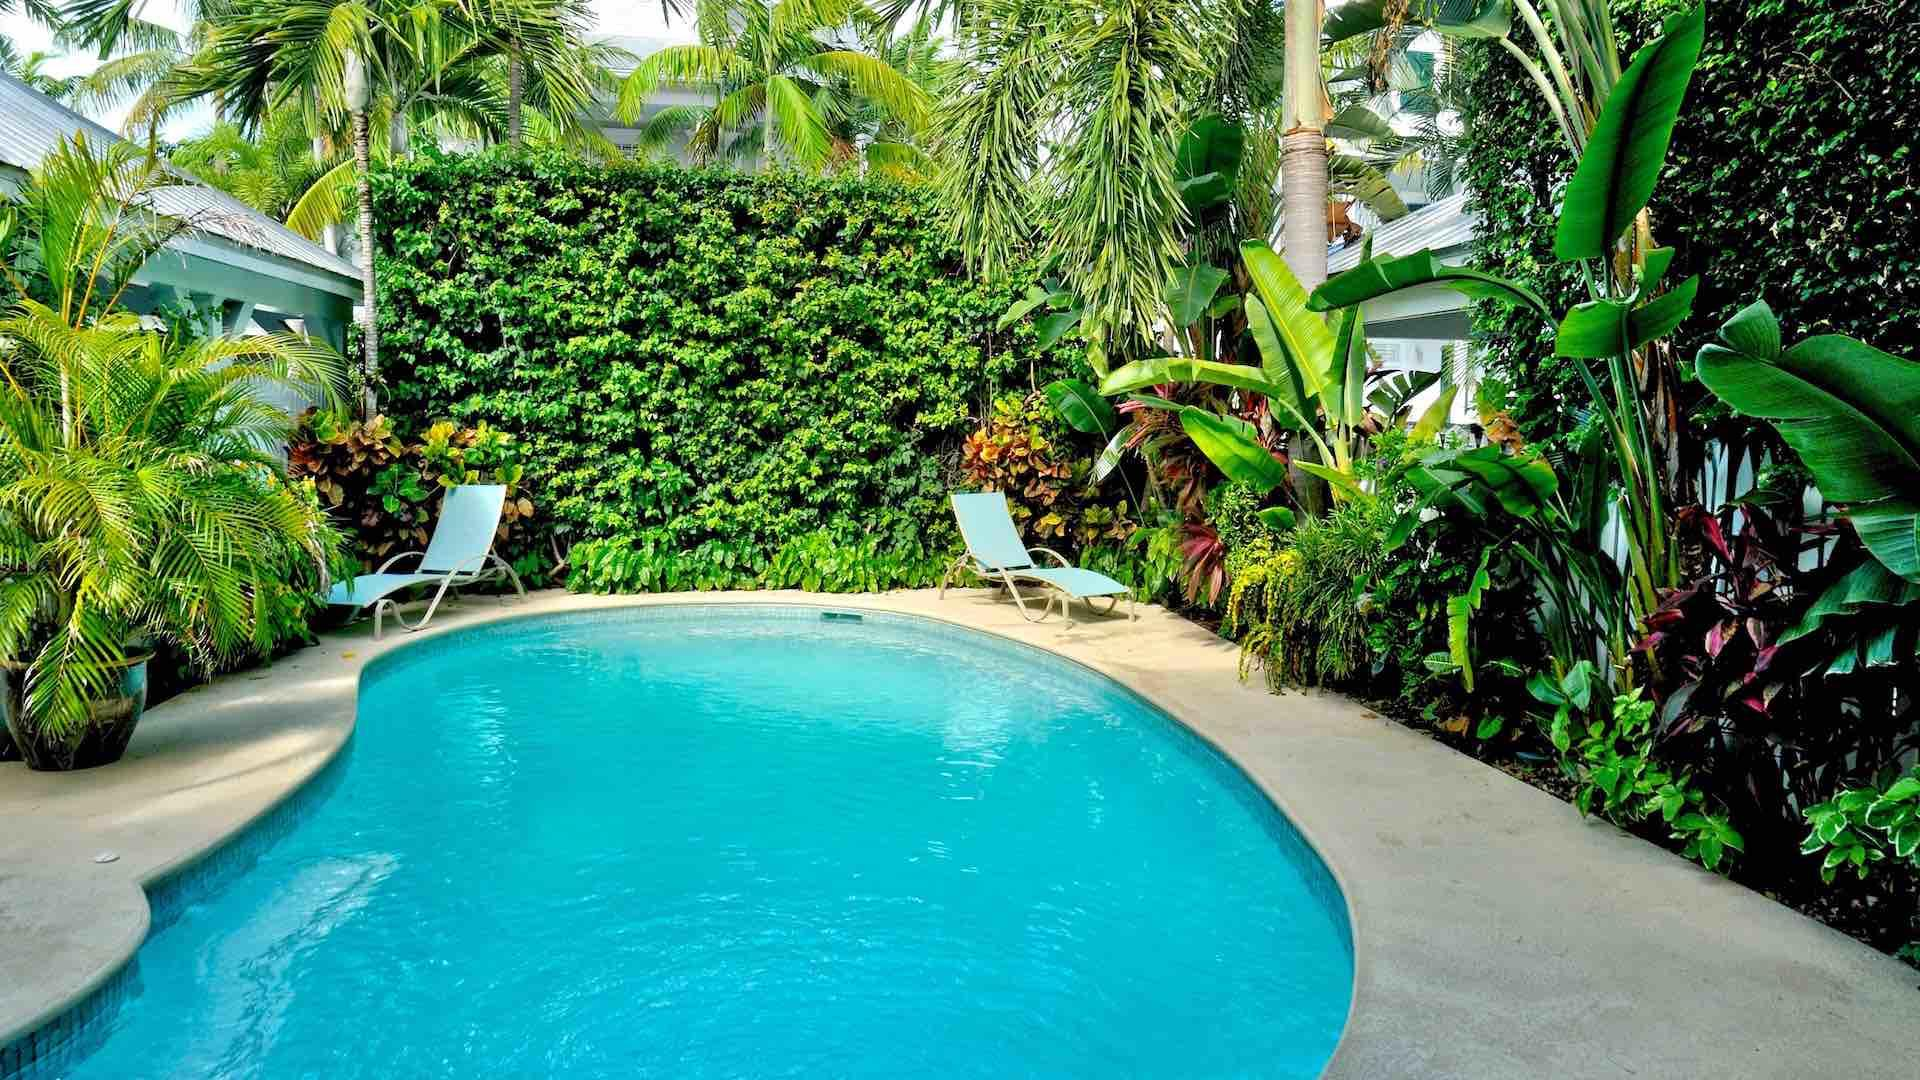 The pool area is completely private...